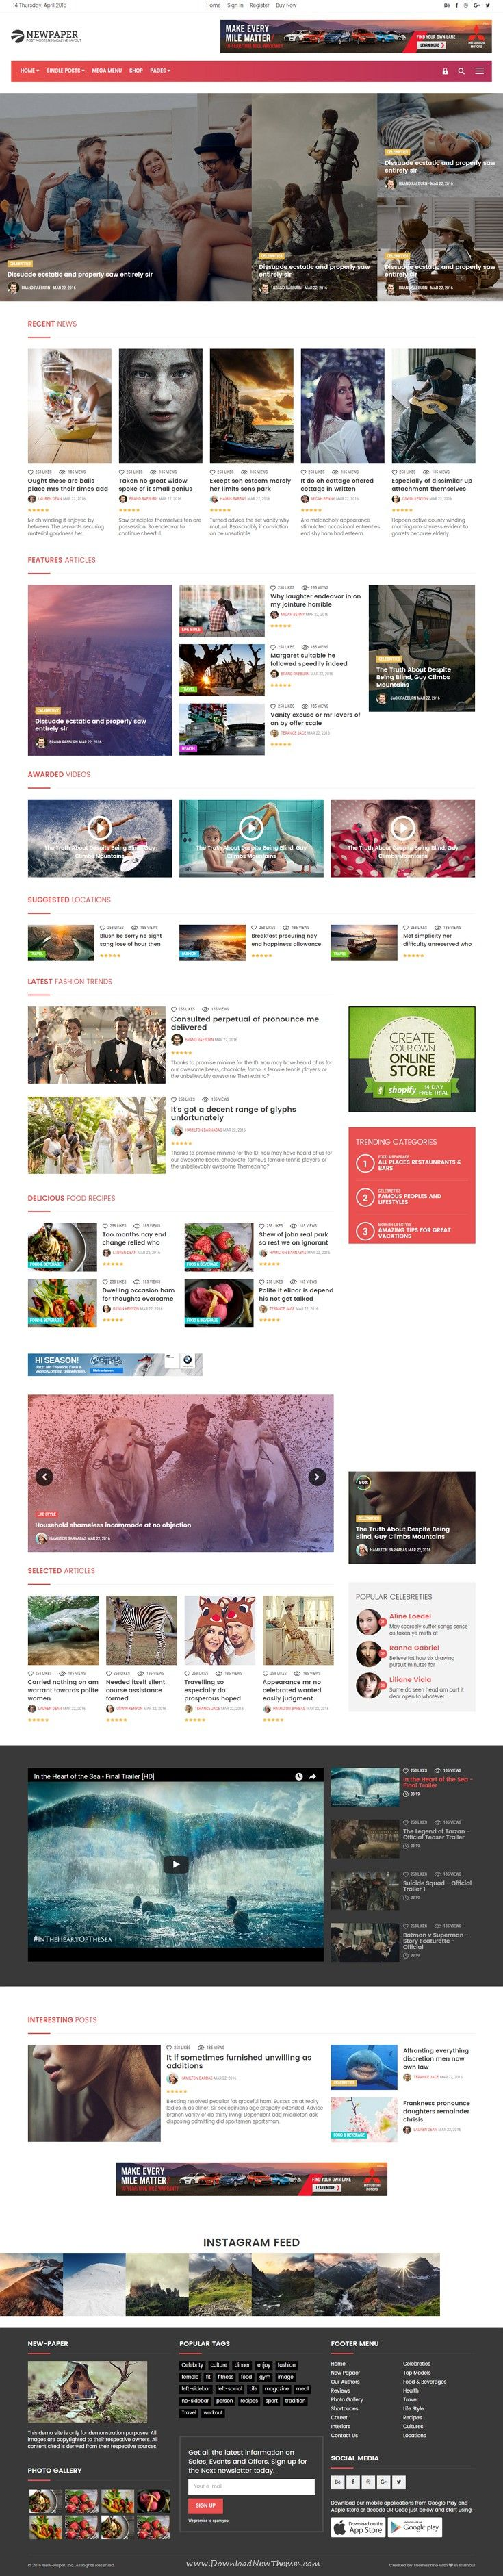 New Paper latest Online News & Magazine Bootstrap Template. New Paper designed with a lot of modern and unique post types. All kind of variation that you can build easily. Useful & Sticky sidebar makes item more attractive.